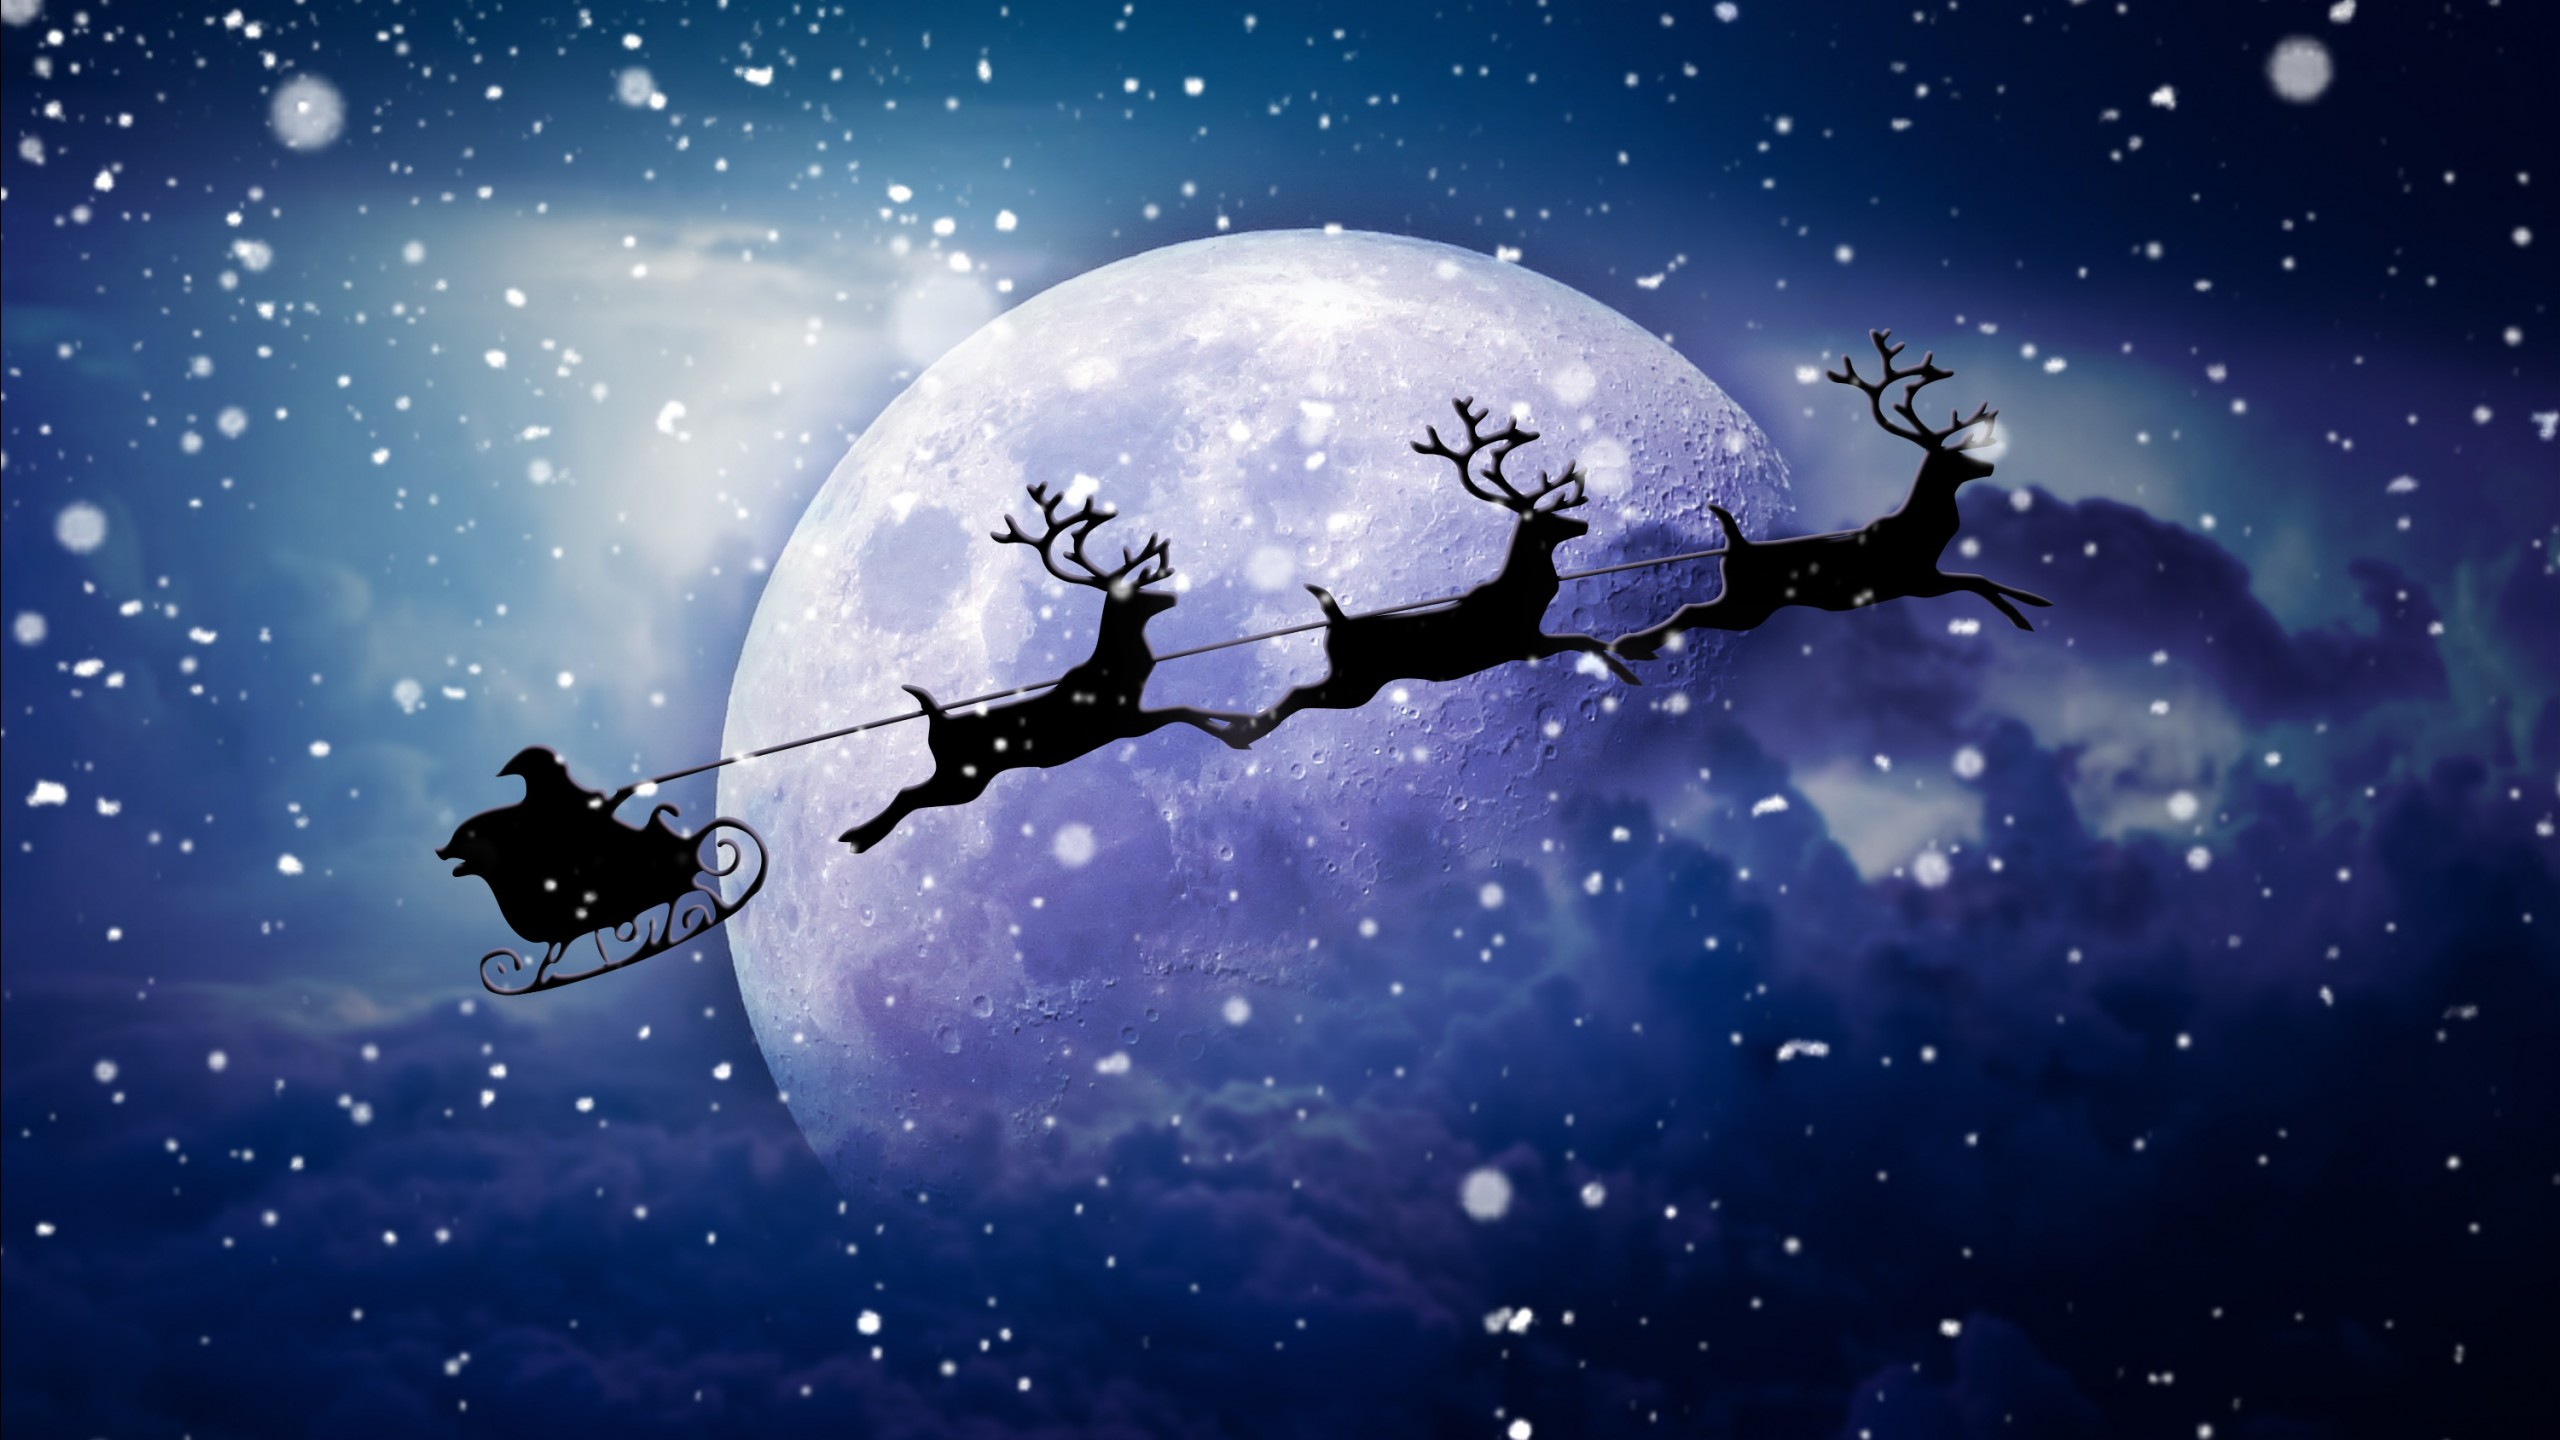 3d Android Wallpaper For Tablets Santa Reindeer Chariot Moon Wallpapers Hd Wallpapers